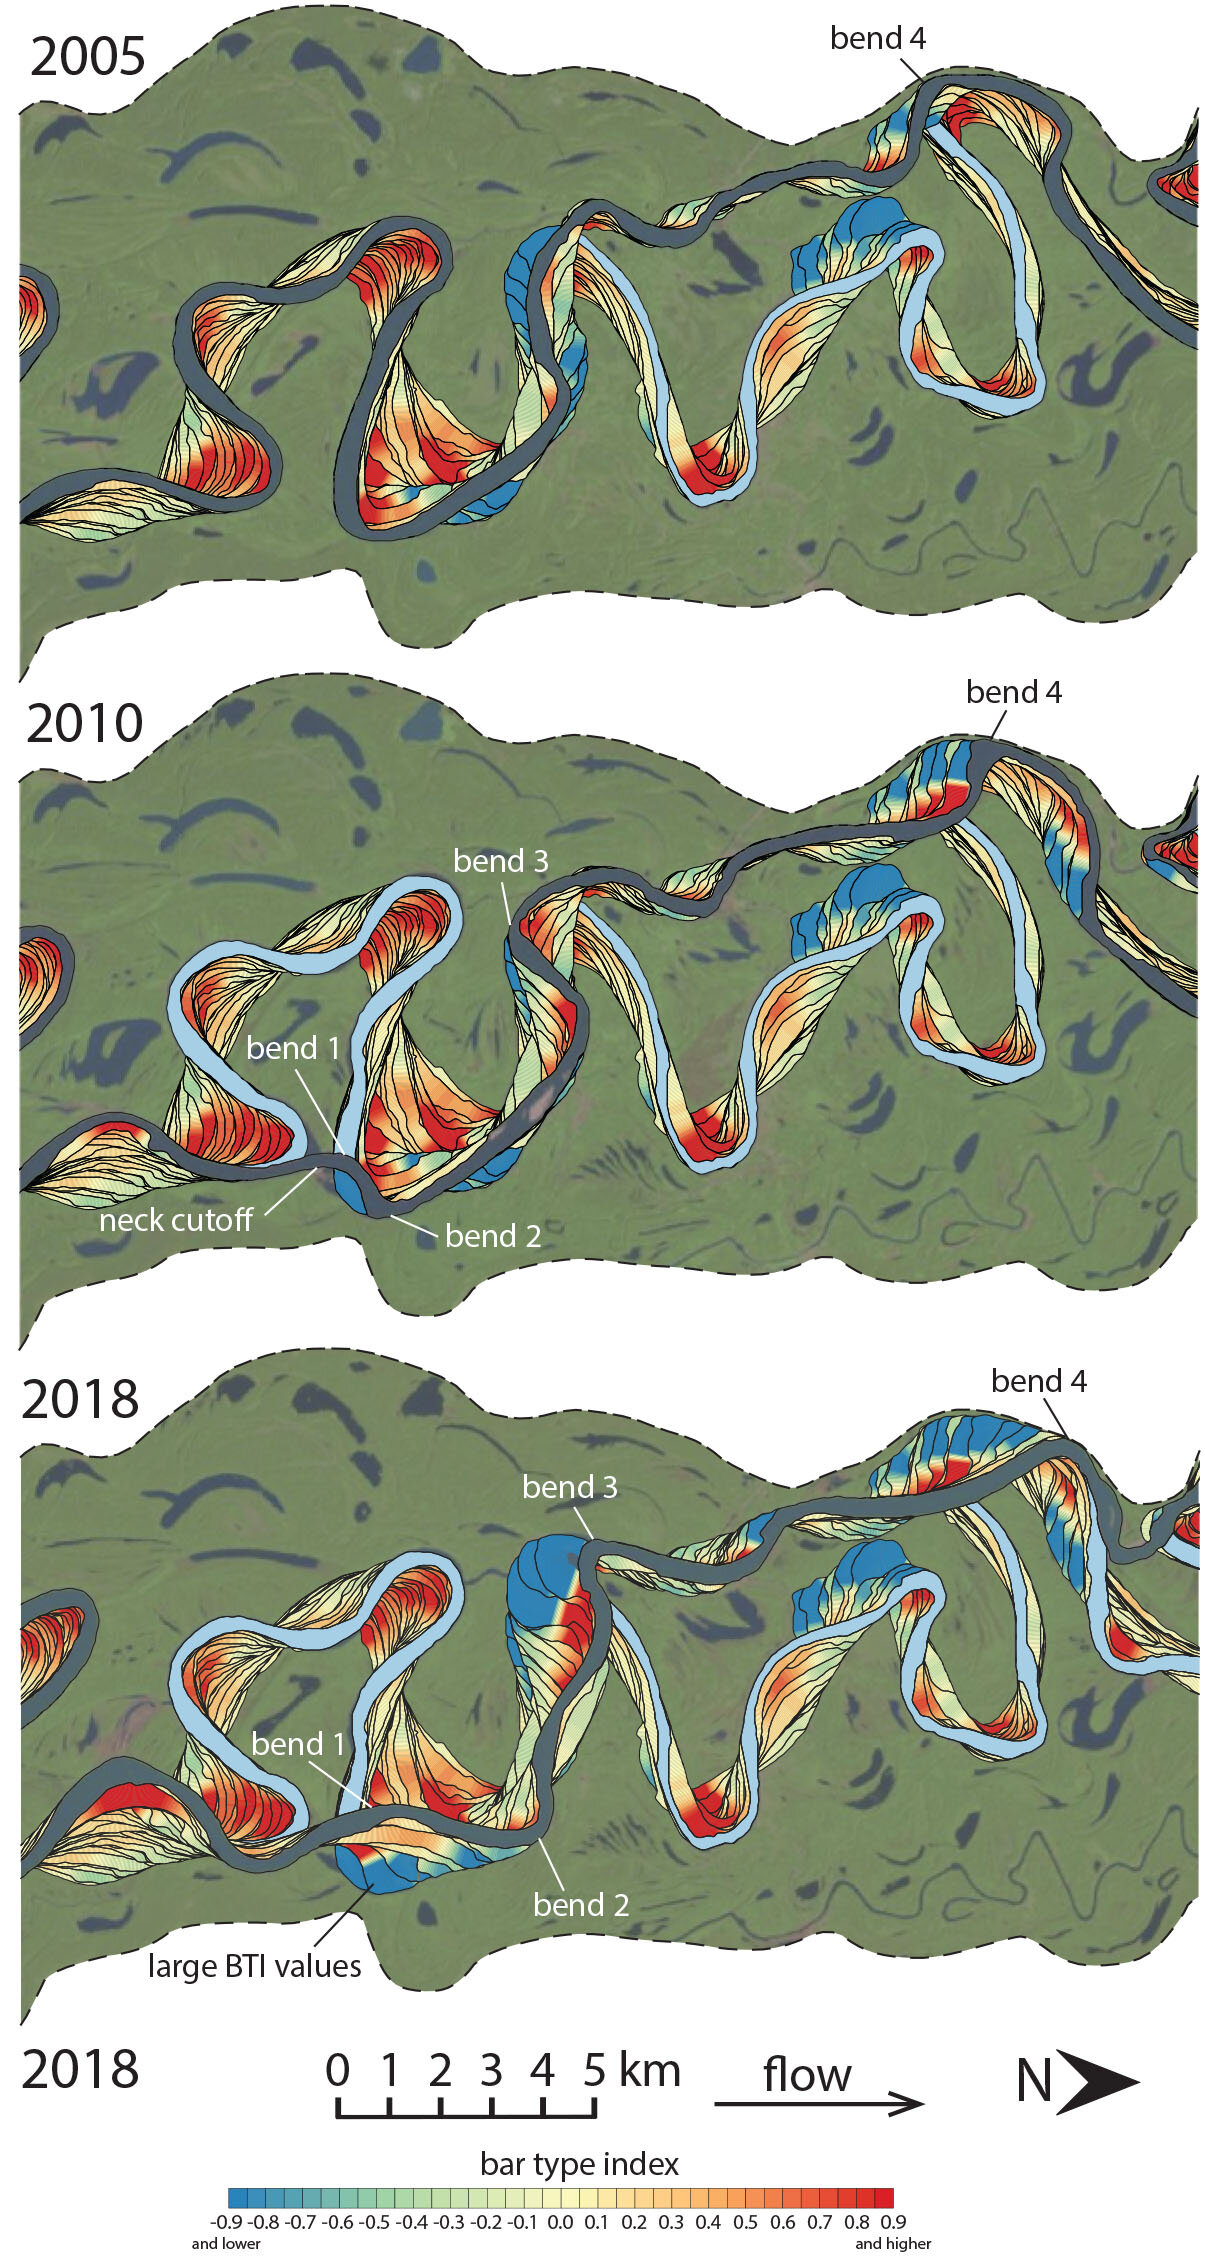 Meandering rivers create 'counter-point bars' no matter underlying geology